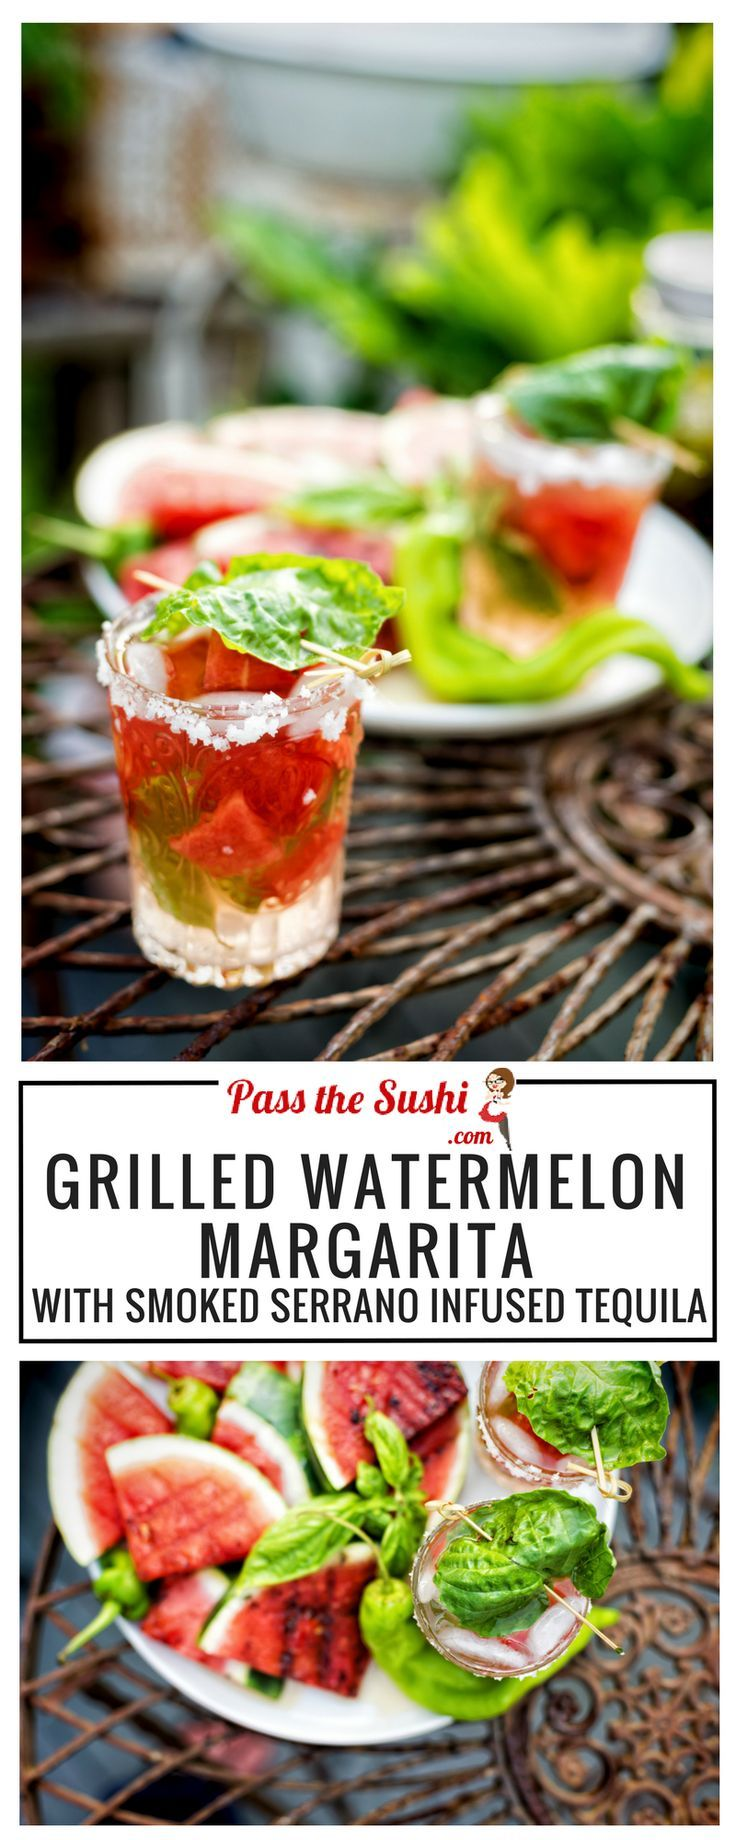 Grilled watermelon margarita with smokey serrano infused tequila grilled watermelon margarita with smokey serrano infused tequila best food blogger recipes pinterest cinco de mayo forumfinder Gallery